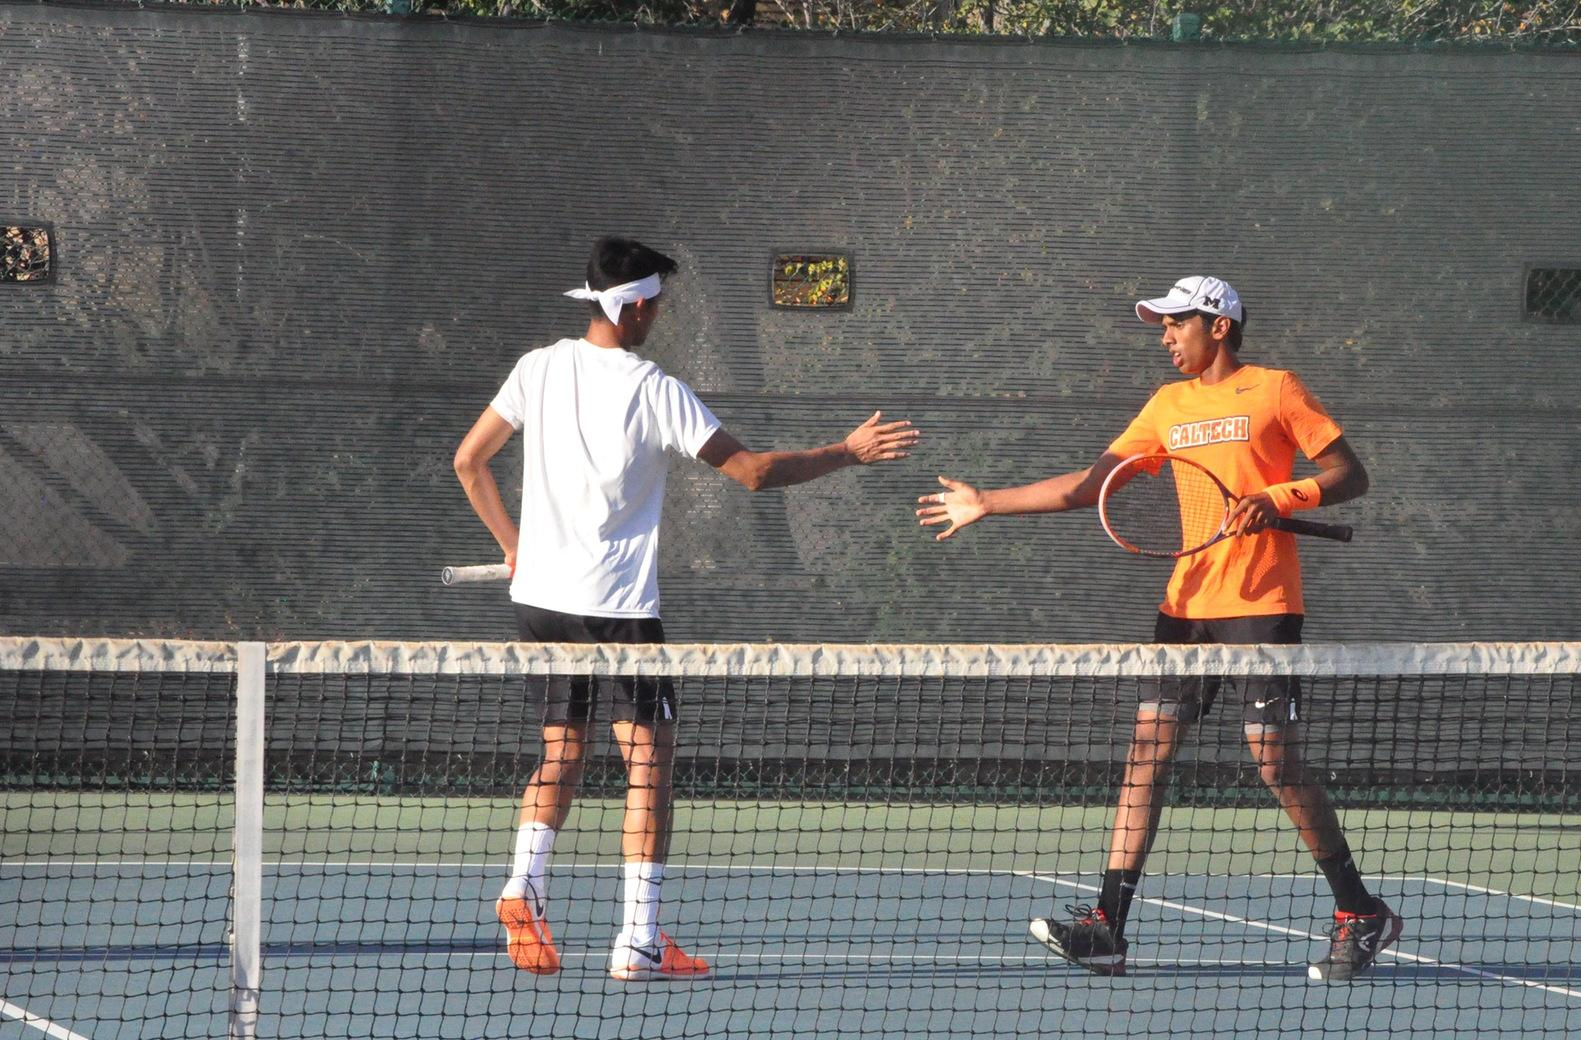 Freshmen Shanker and Wei Earn Program's First-Ever Doubles Win at ITA Regionals